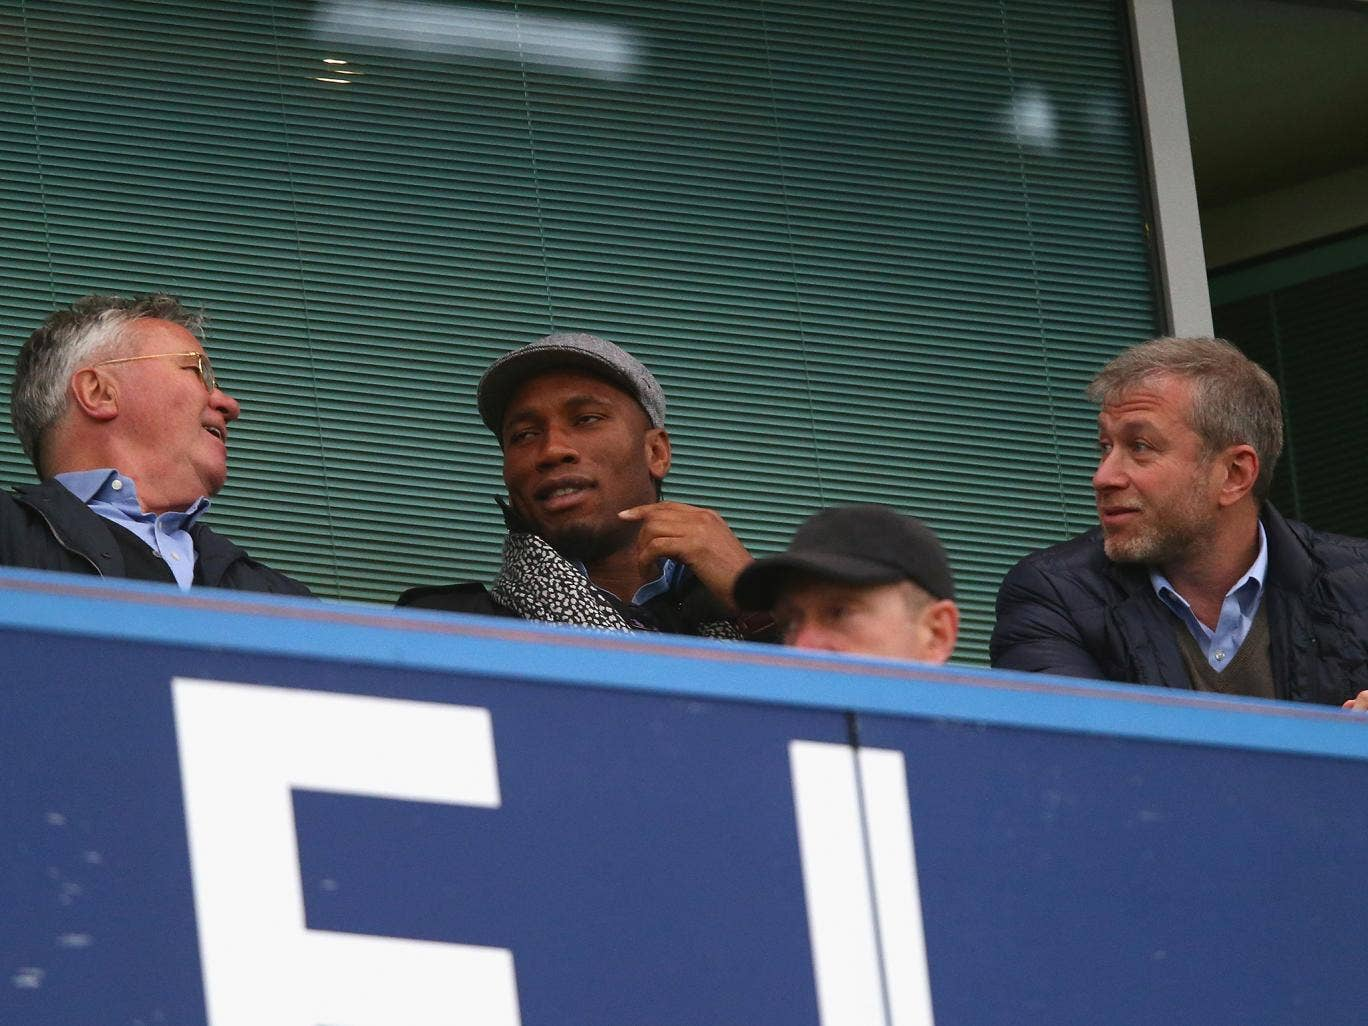 Abramovich is insulted in Italy 09/15/2011 43